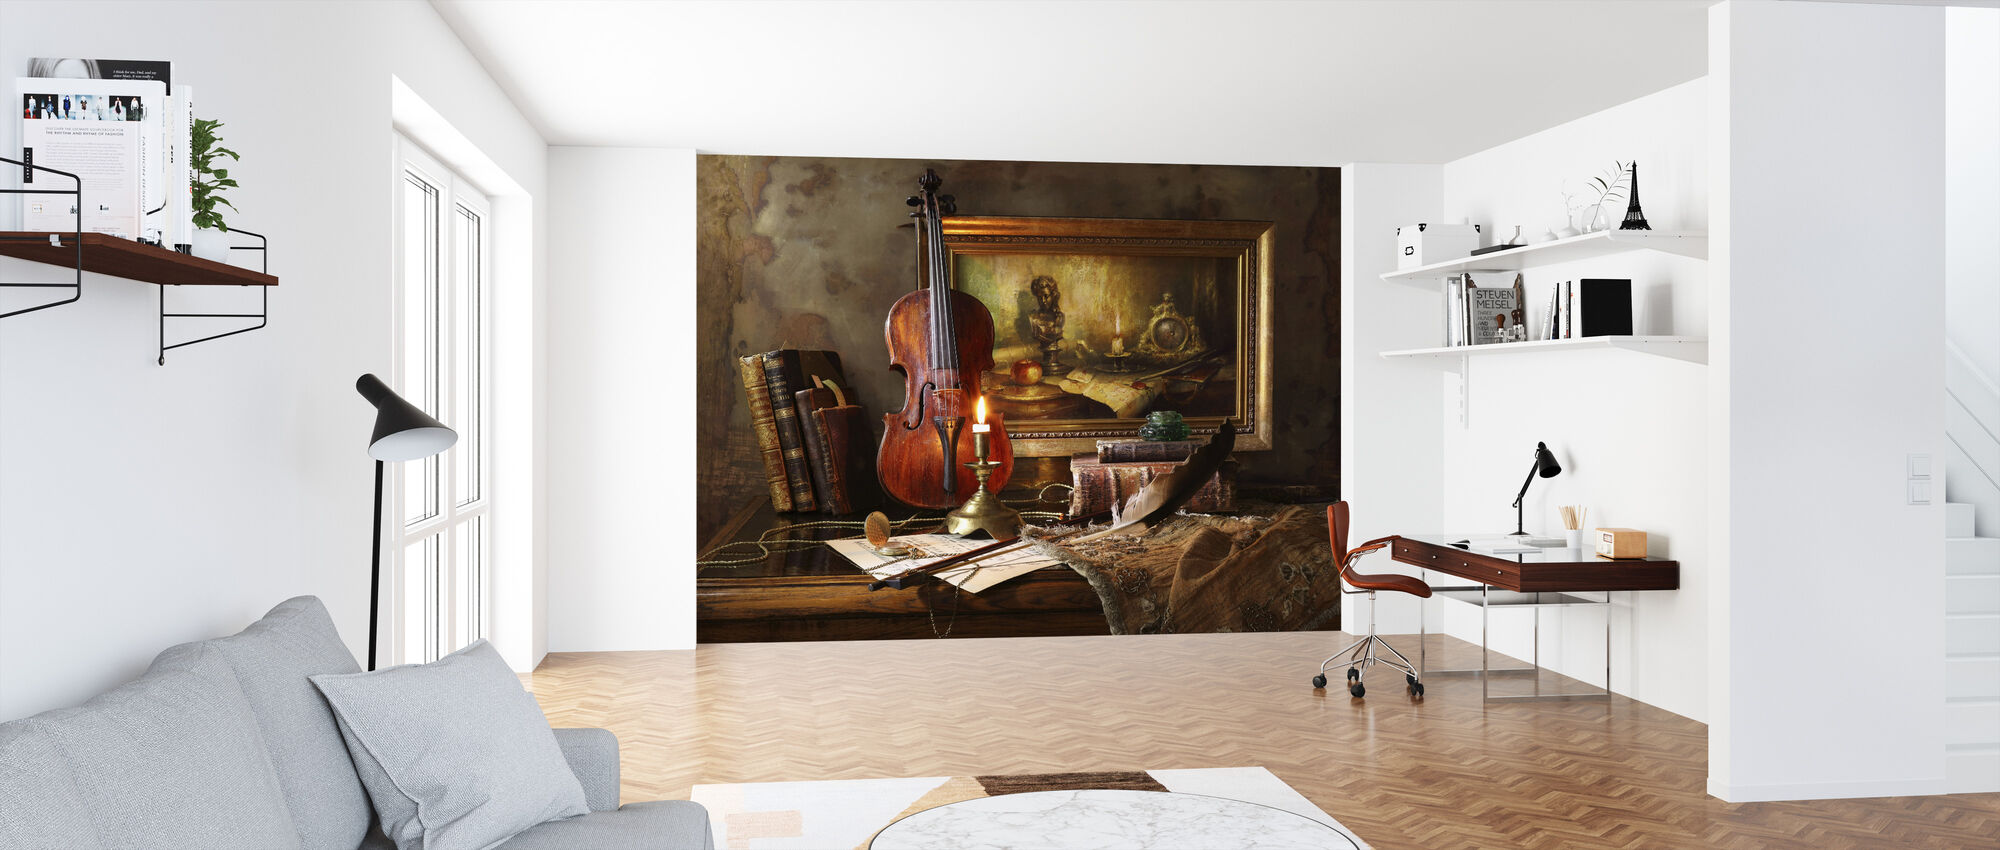 Still Life with Violin and Painting - Wallpaper - Office